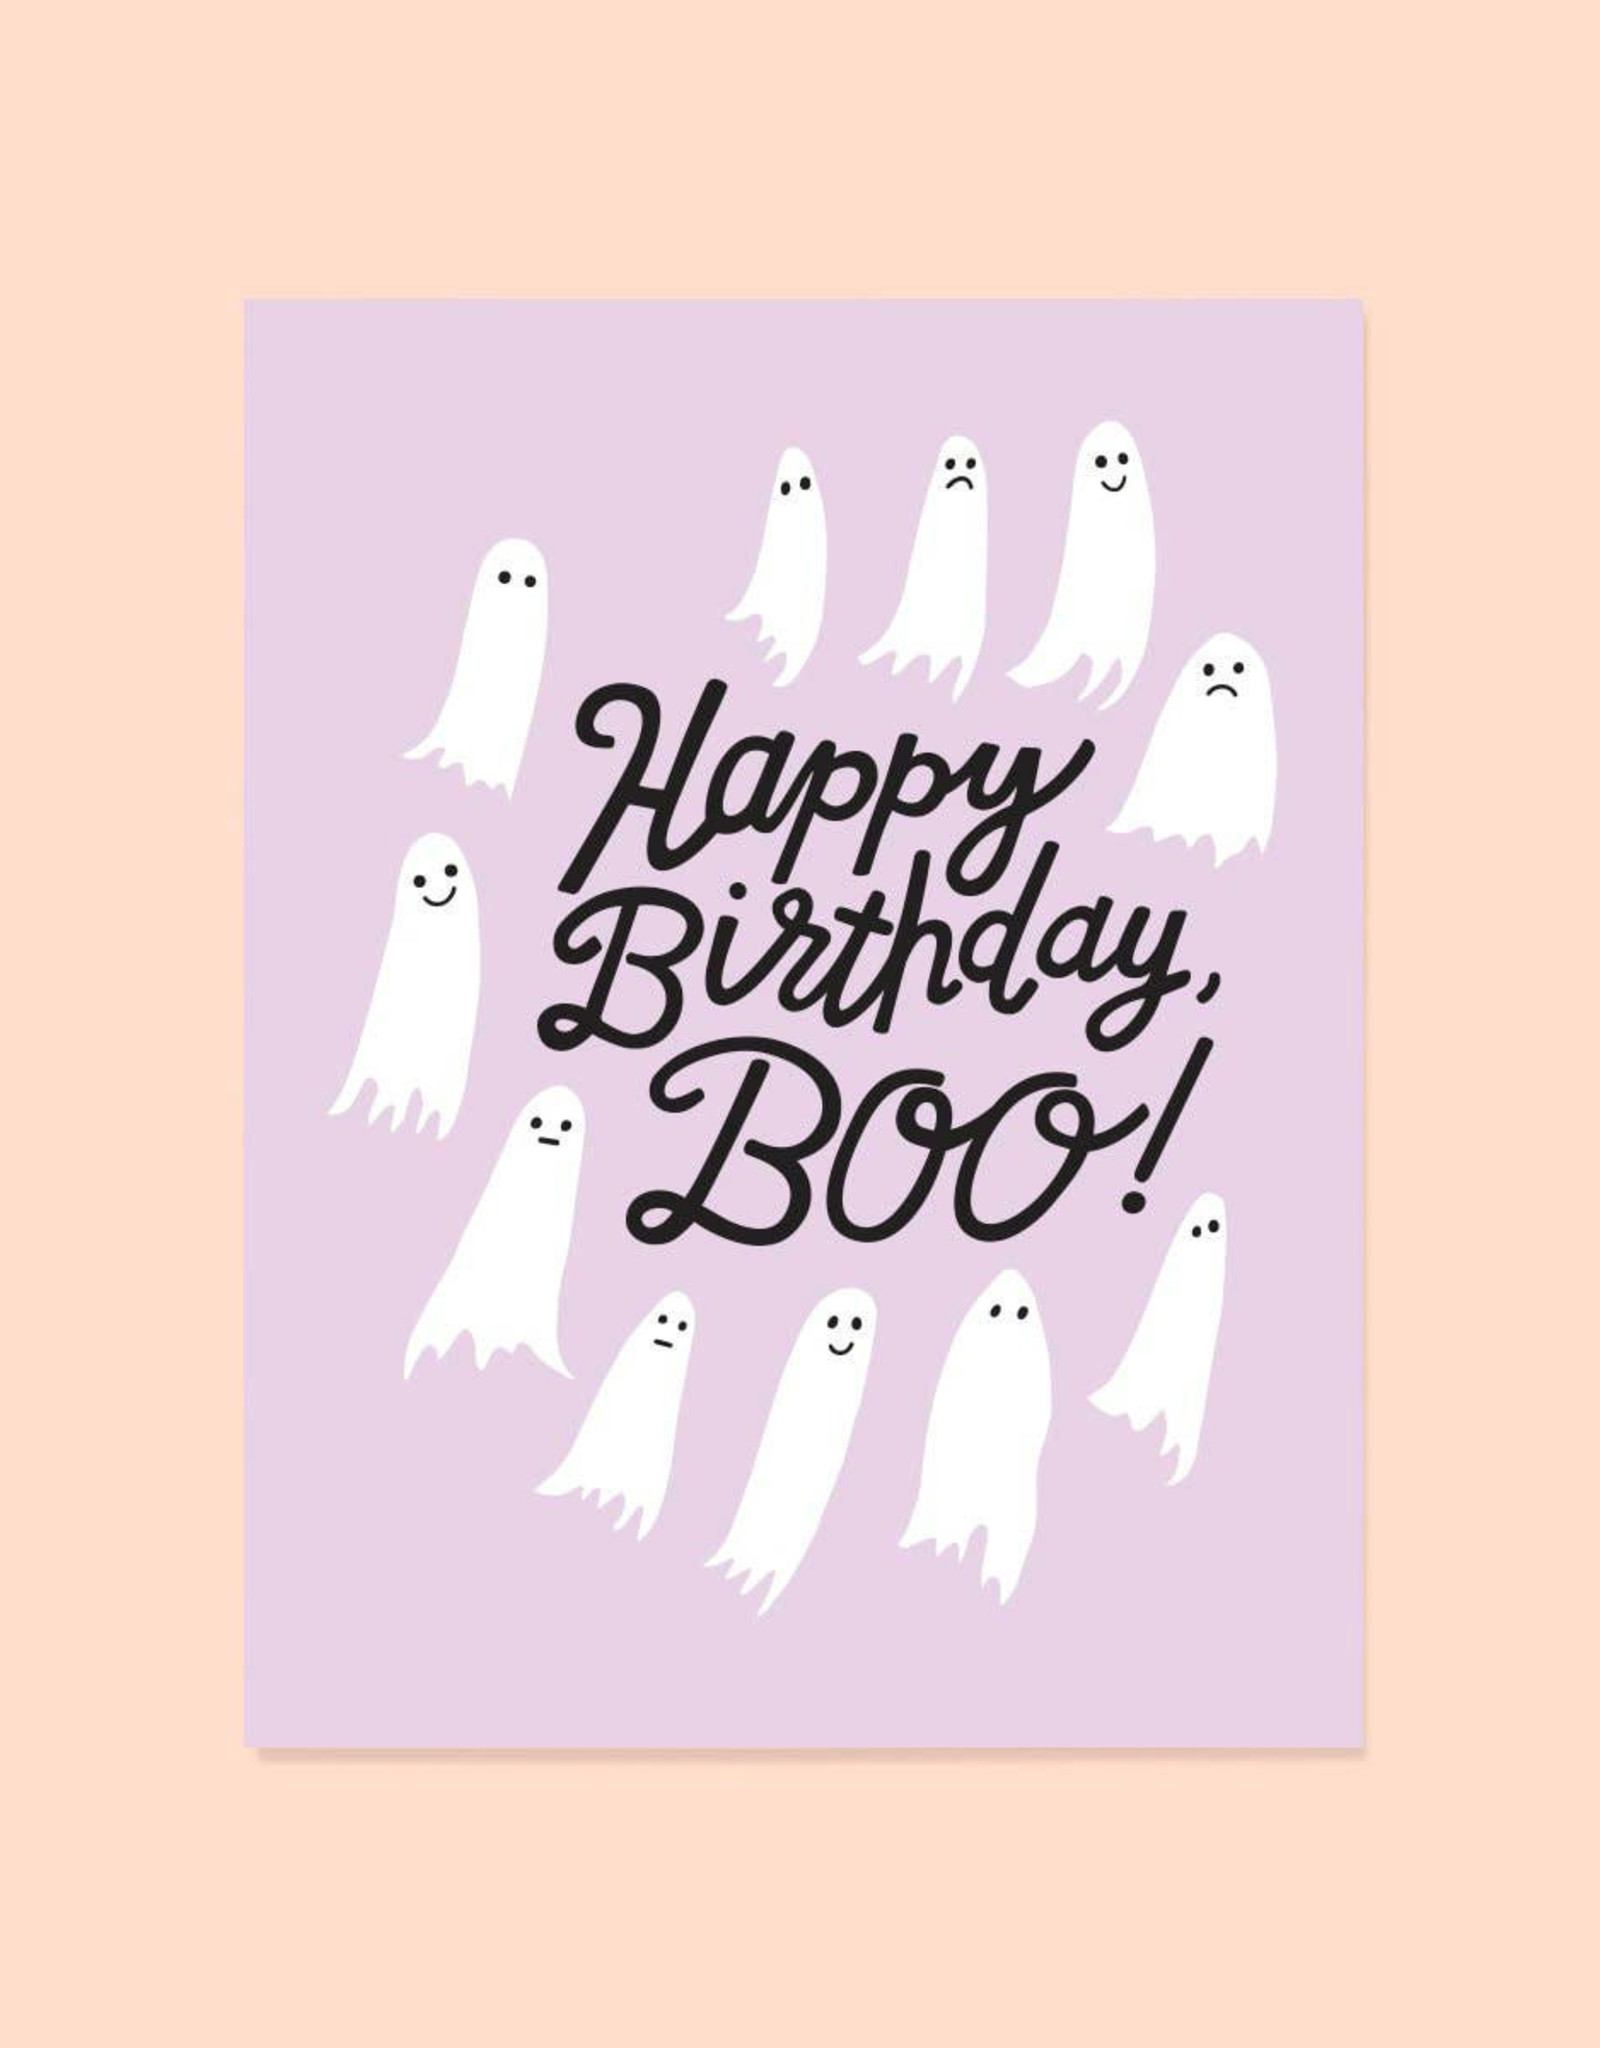 The Good Twin Birthday Boo Card